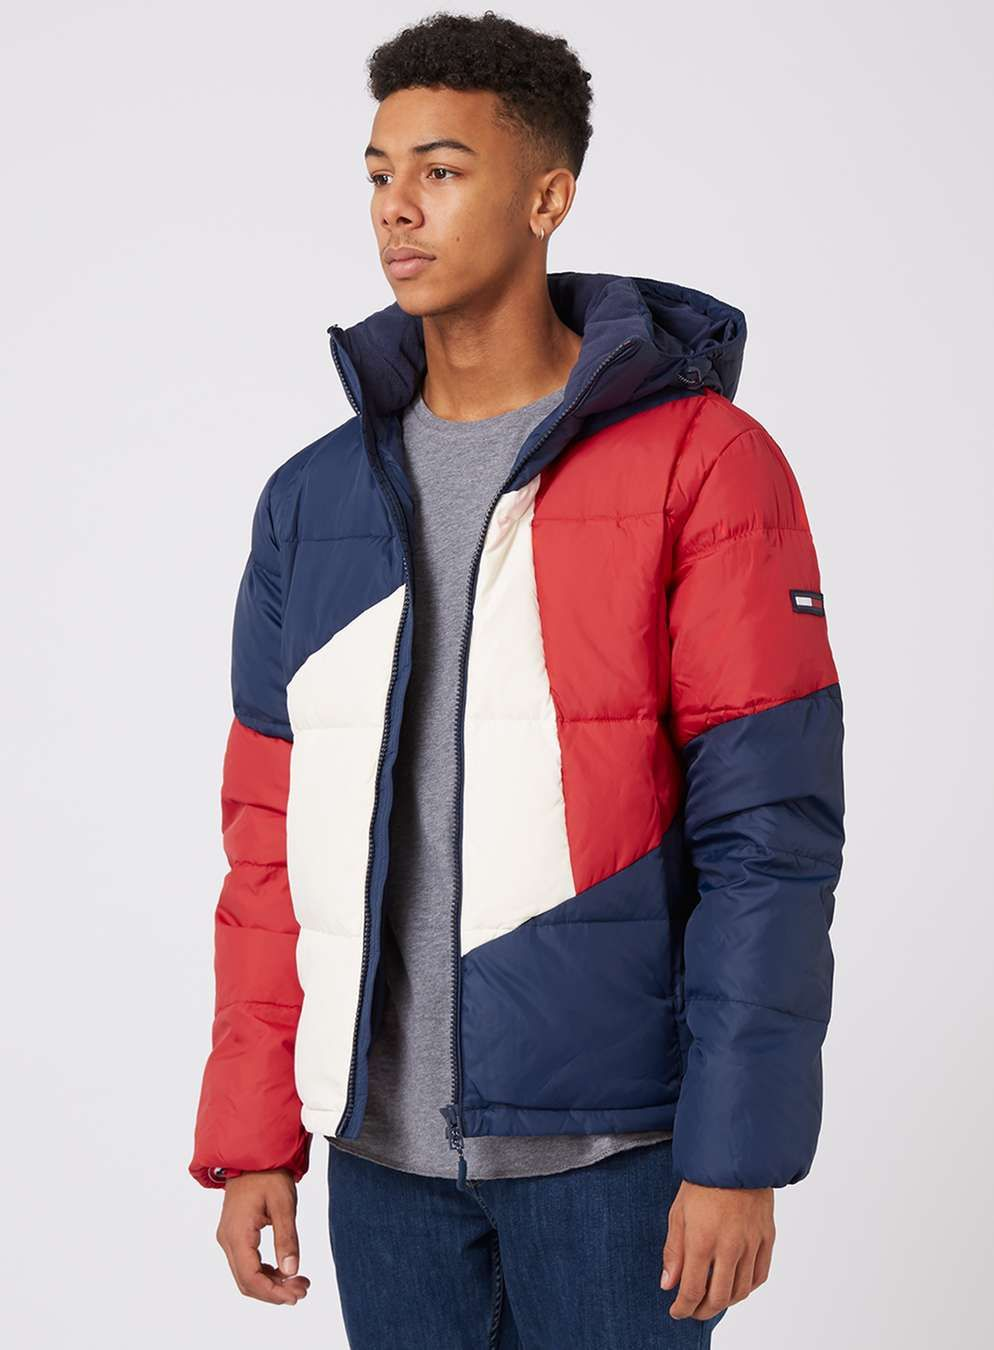 92c7b4b18aa2e TOMMY HILFIGER Padded Colour Block Jacket - Men s Coats   Jackets -  Clothing - TOPMAN